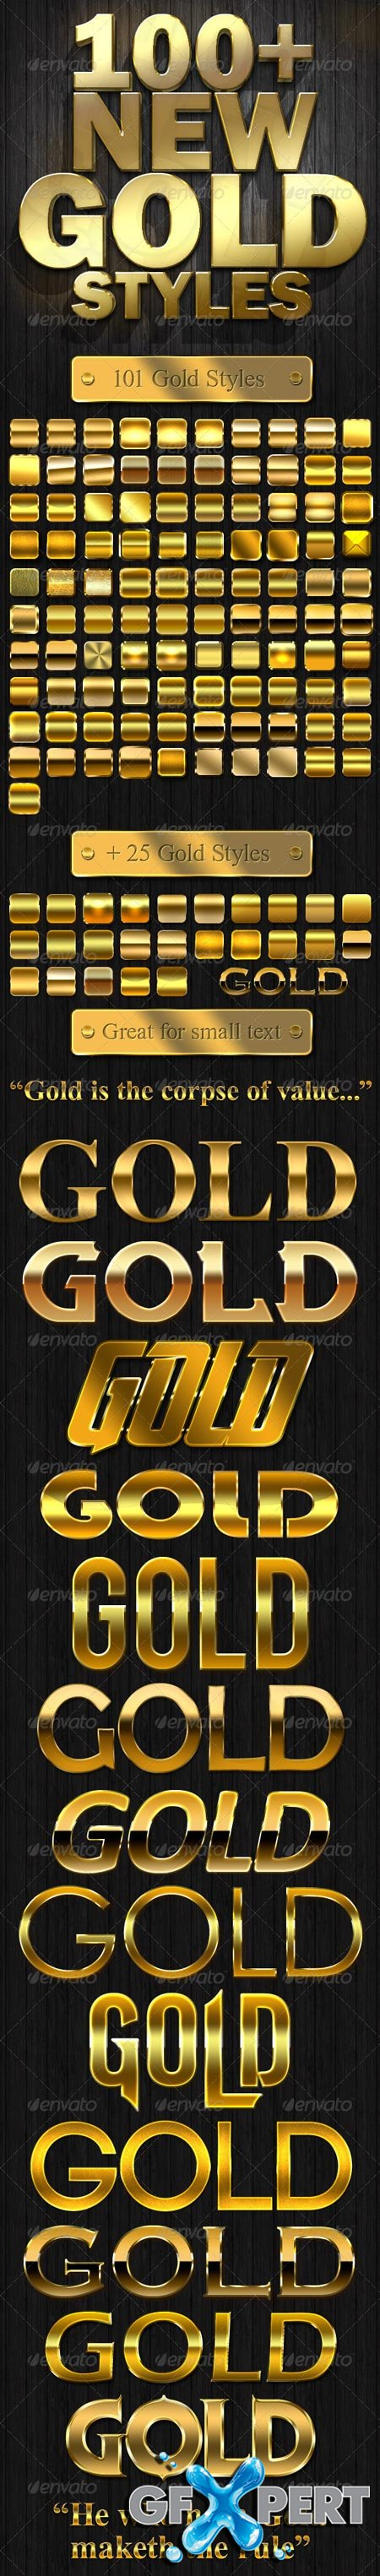 GraphicRiver 100+ New Gold Styles 5337340